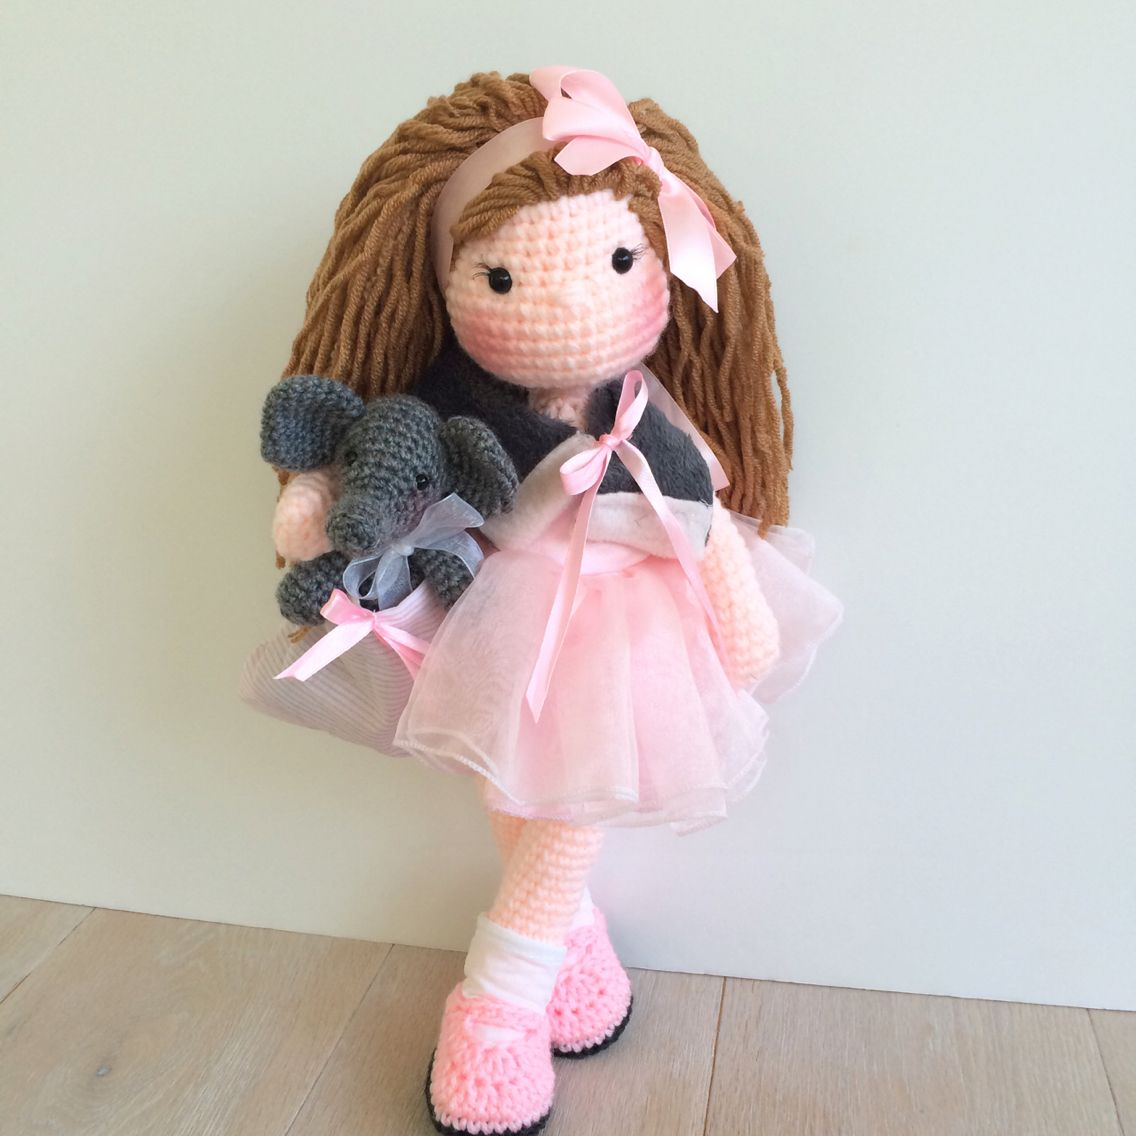 Knitting Pattern Ballerina Doll : Amigurumi ballerina and crochet elephant ...